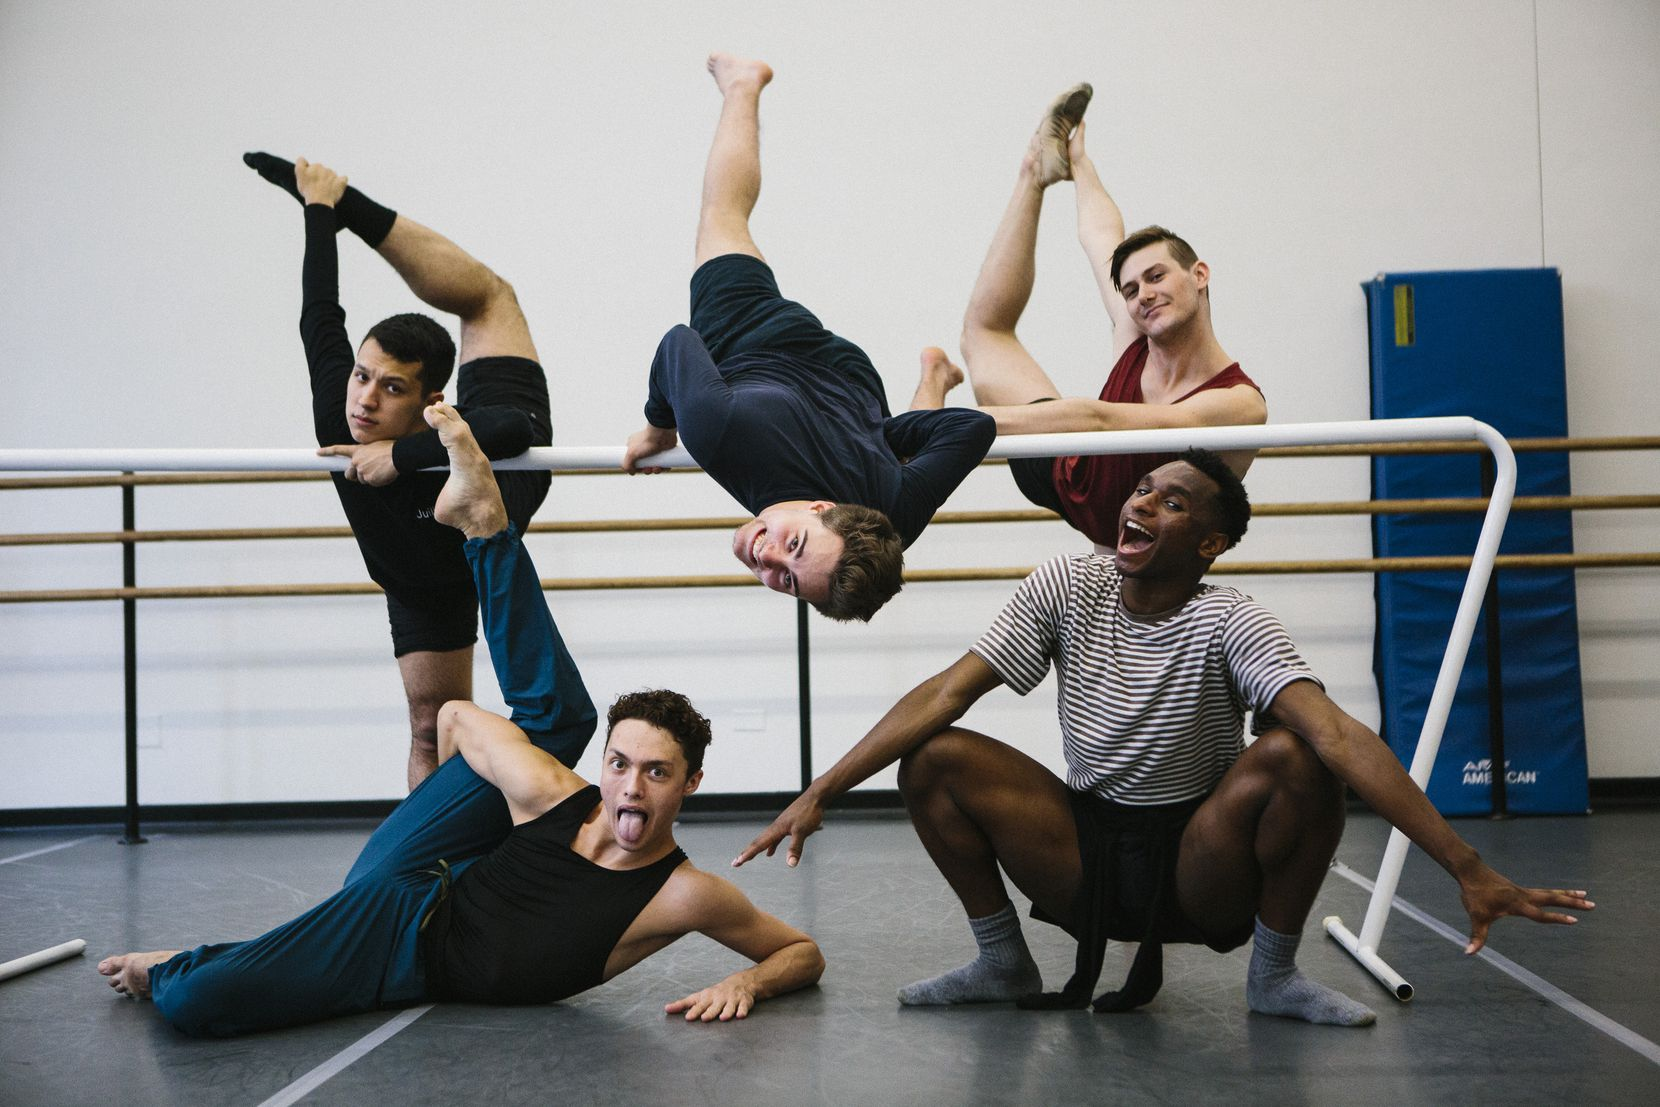 Booker T. Washington alumni Michael Garcia (clockwise from top left), Zane Unger, Todd Baker, Ricardo Hartley and Kade Cummings were all accepted at New York's Juilliard School.